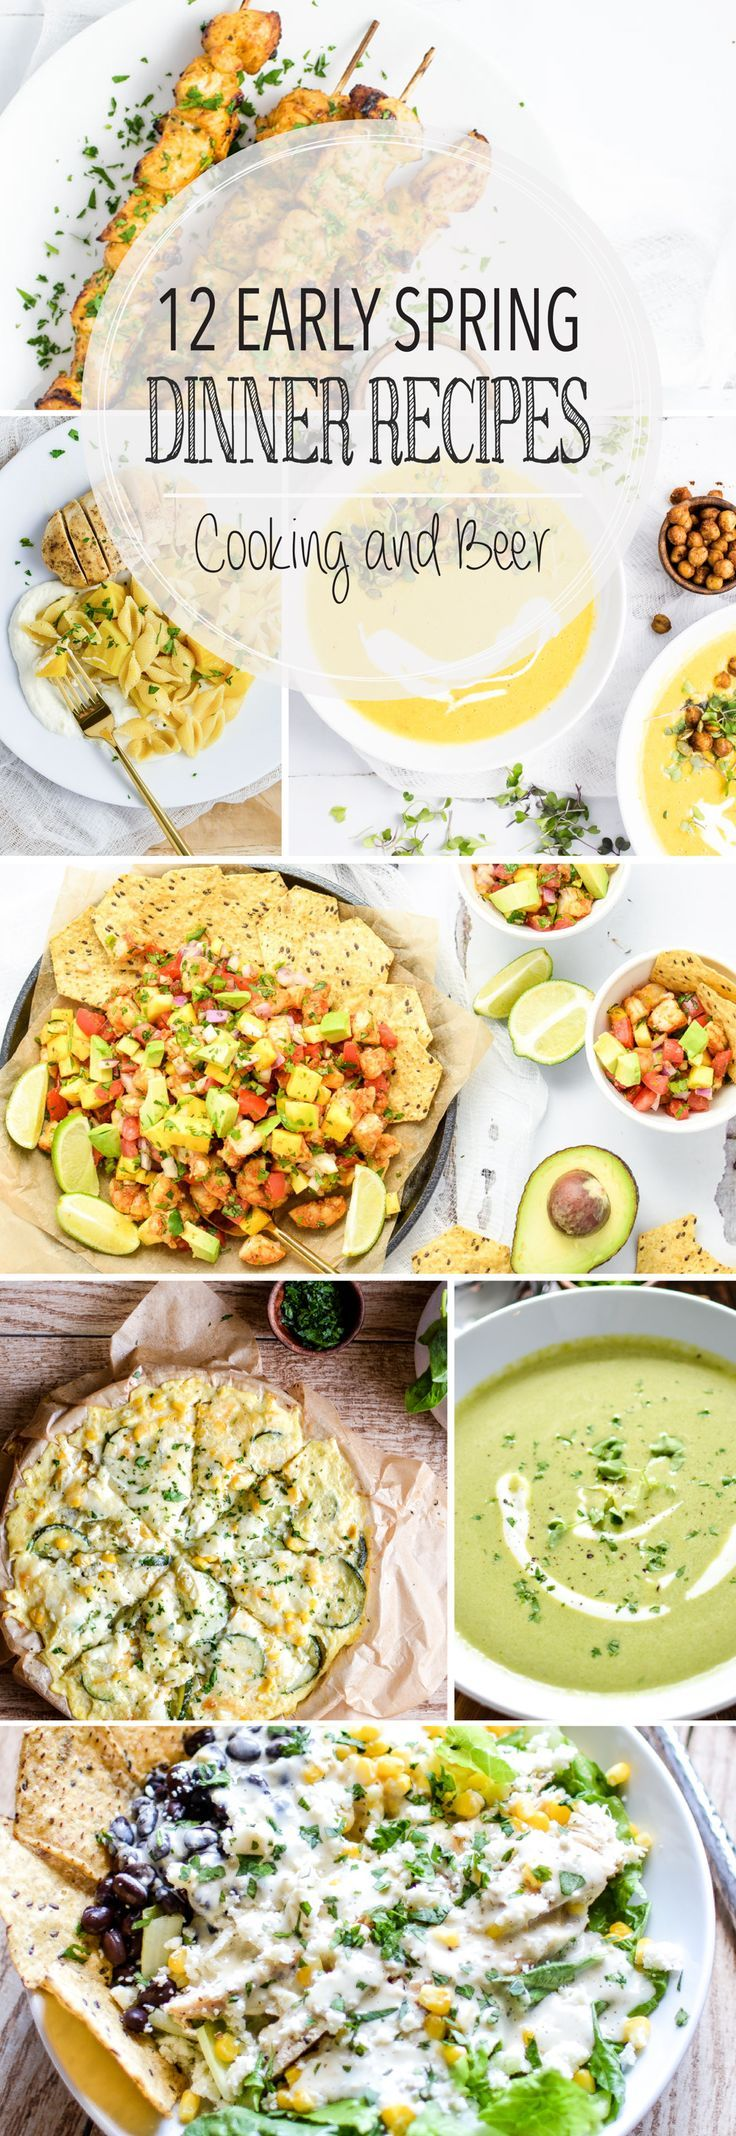 12 Early Spring Dinner Recipes Healthy spring recipes